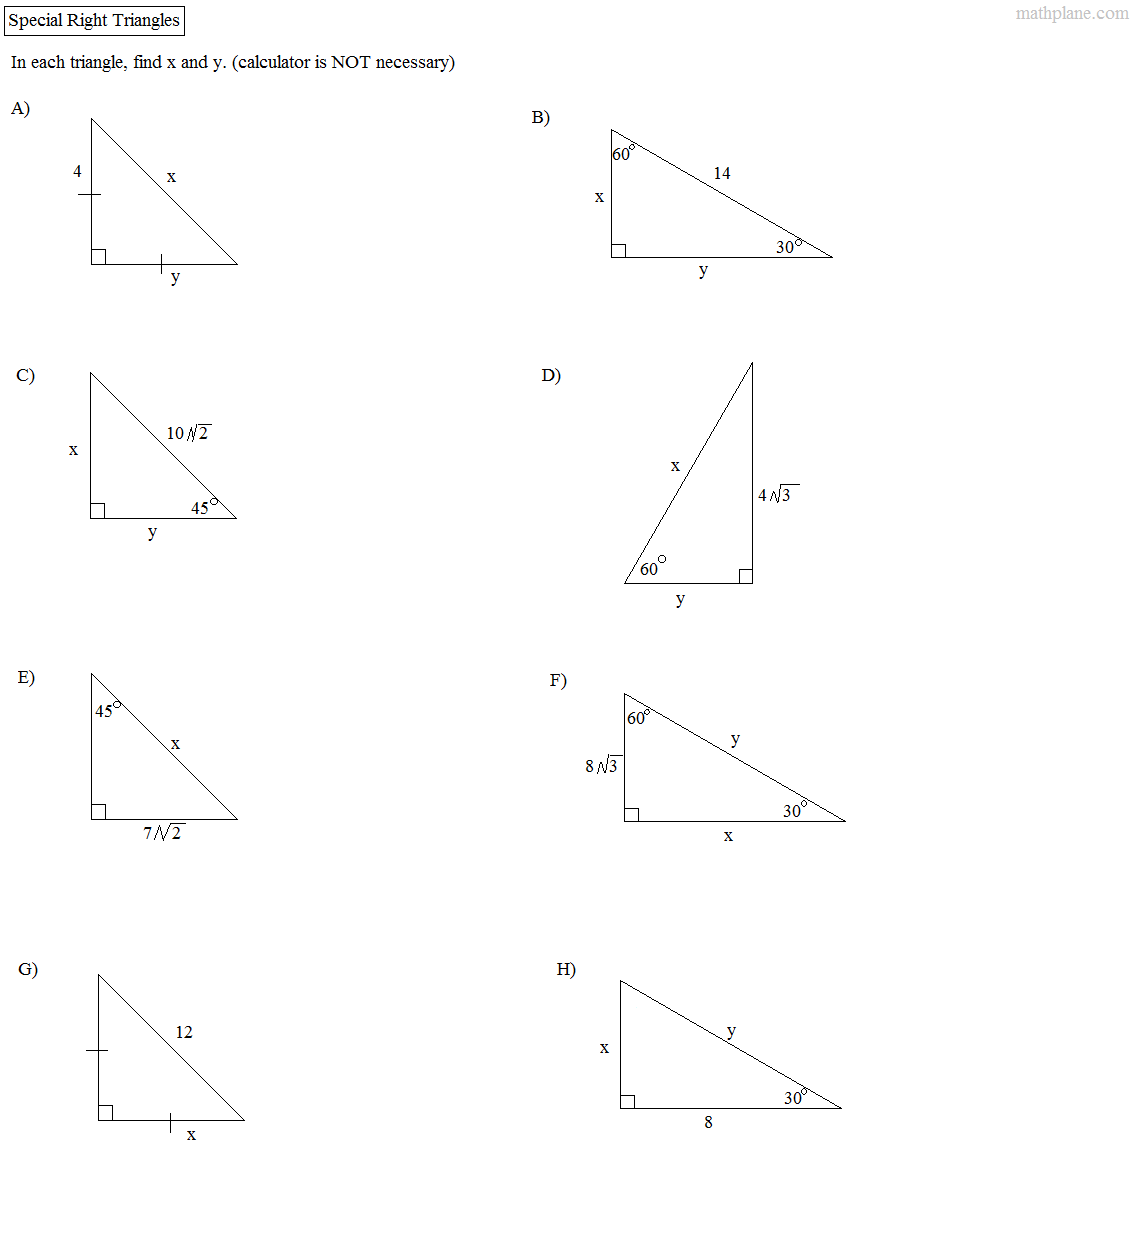 Worksheets Special Right Triangles 30 60 90 Worksheet Answers math plane means extremes and right triangles special exercise